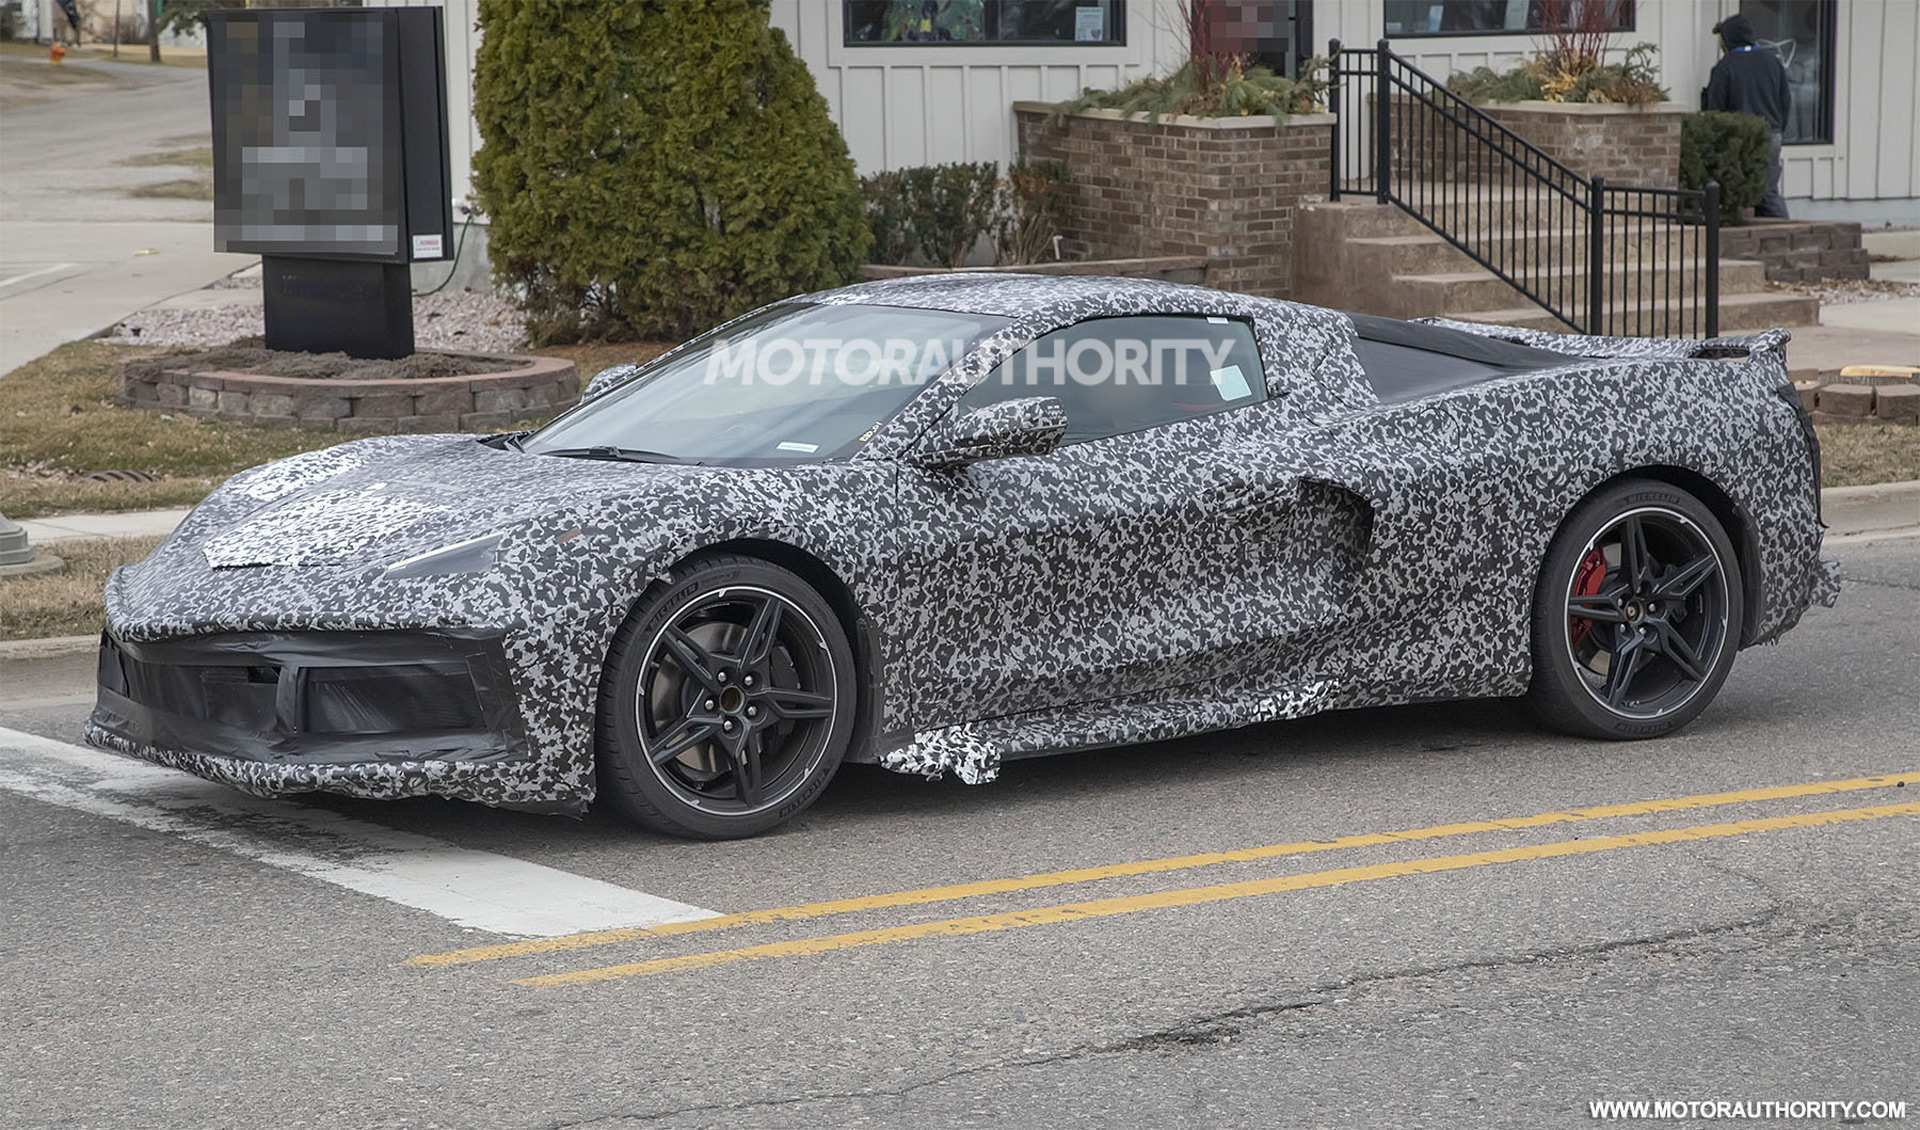 34 A 2020 Chevrolet Corvette Images Images